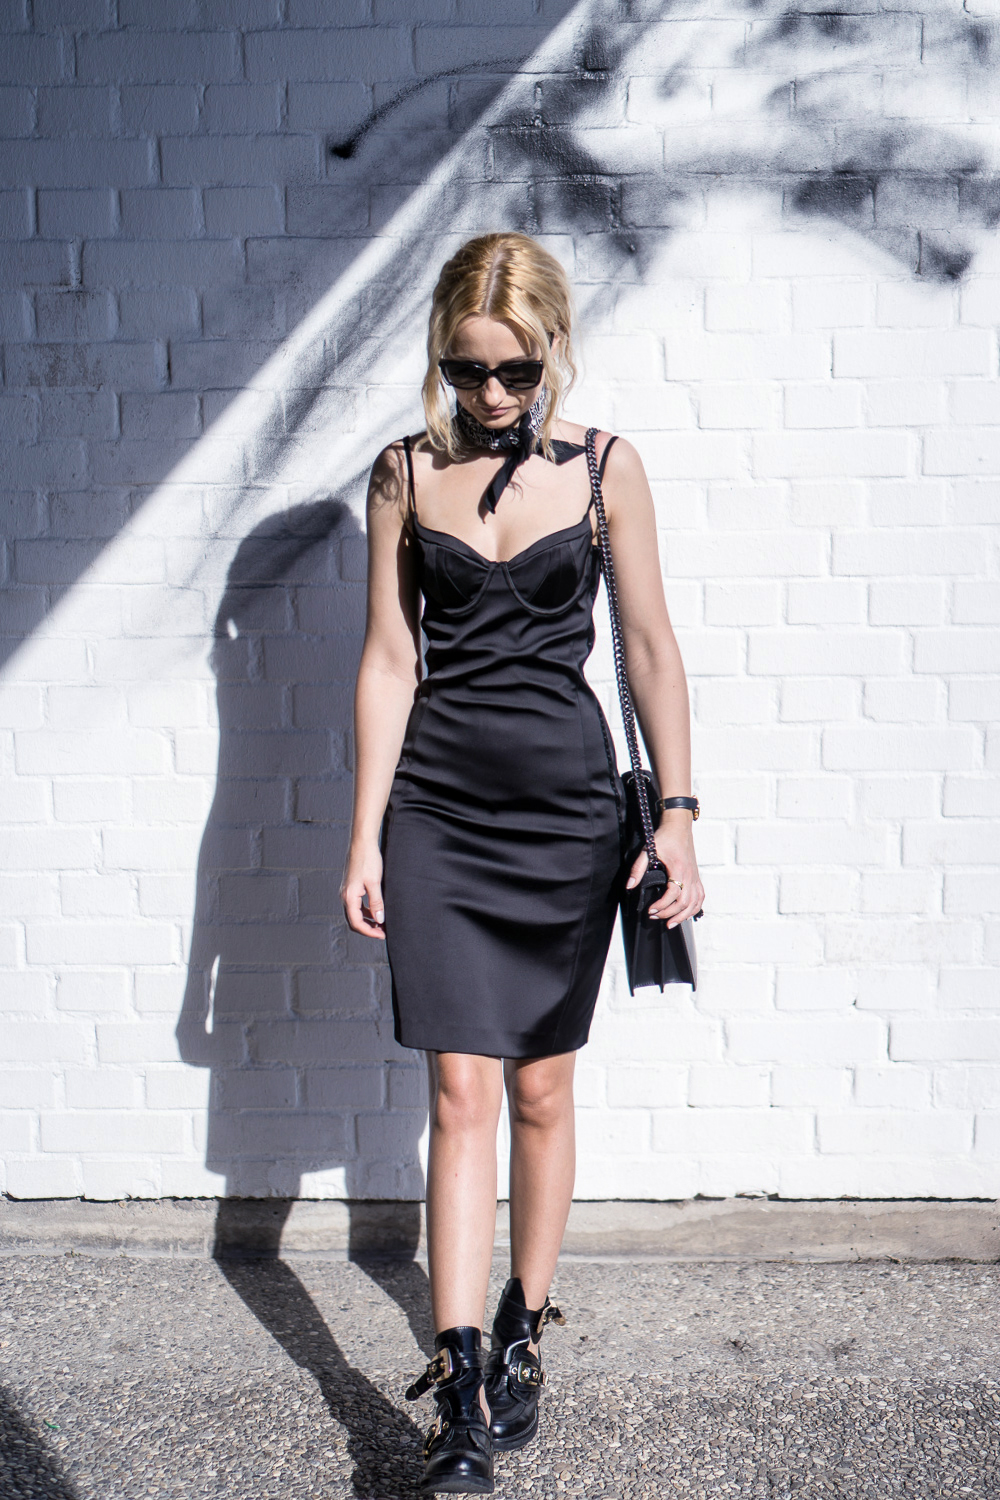 Street style outfit. Lingerie pencil dress in casual set. Fashion inspiration.